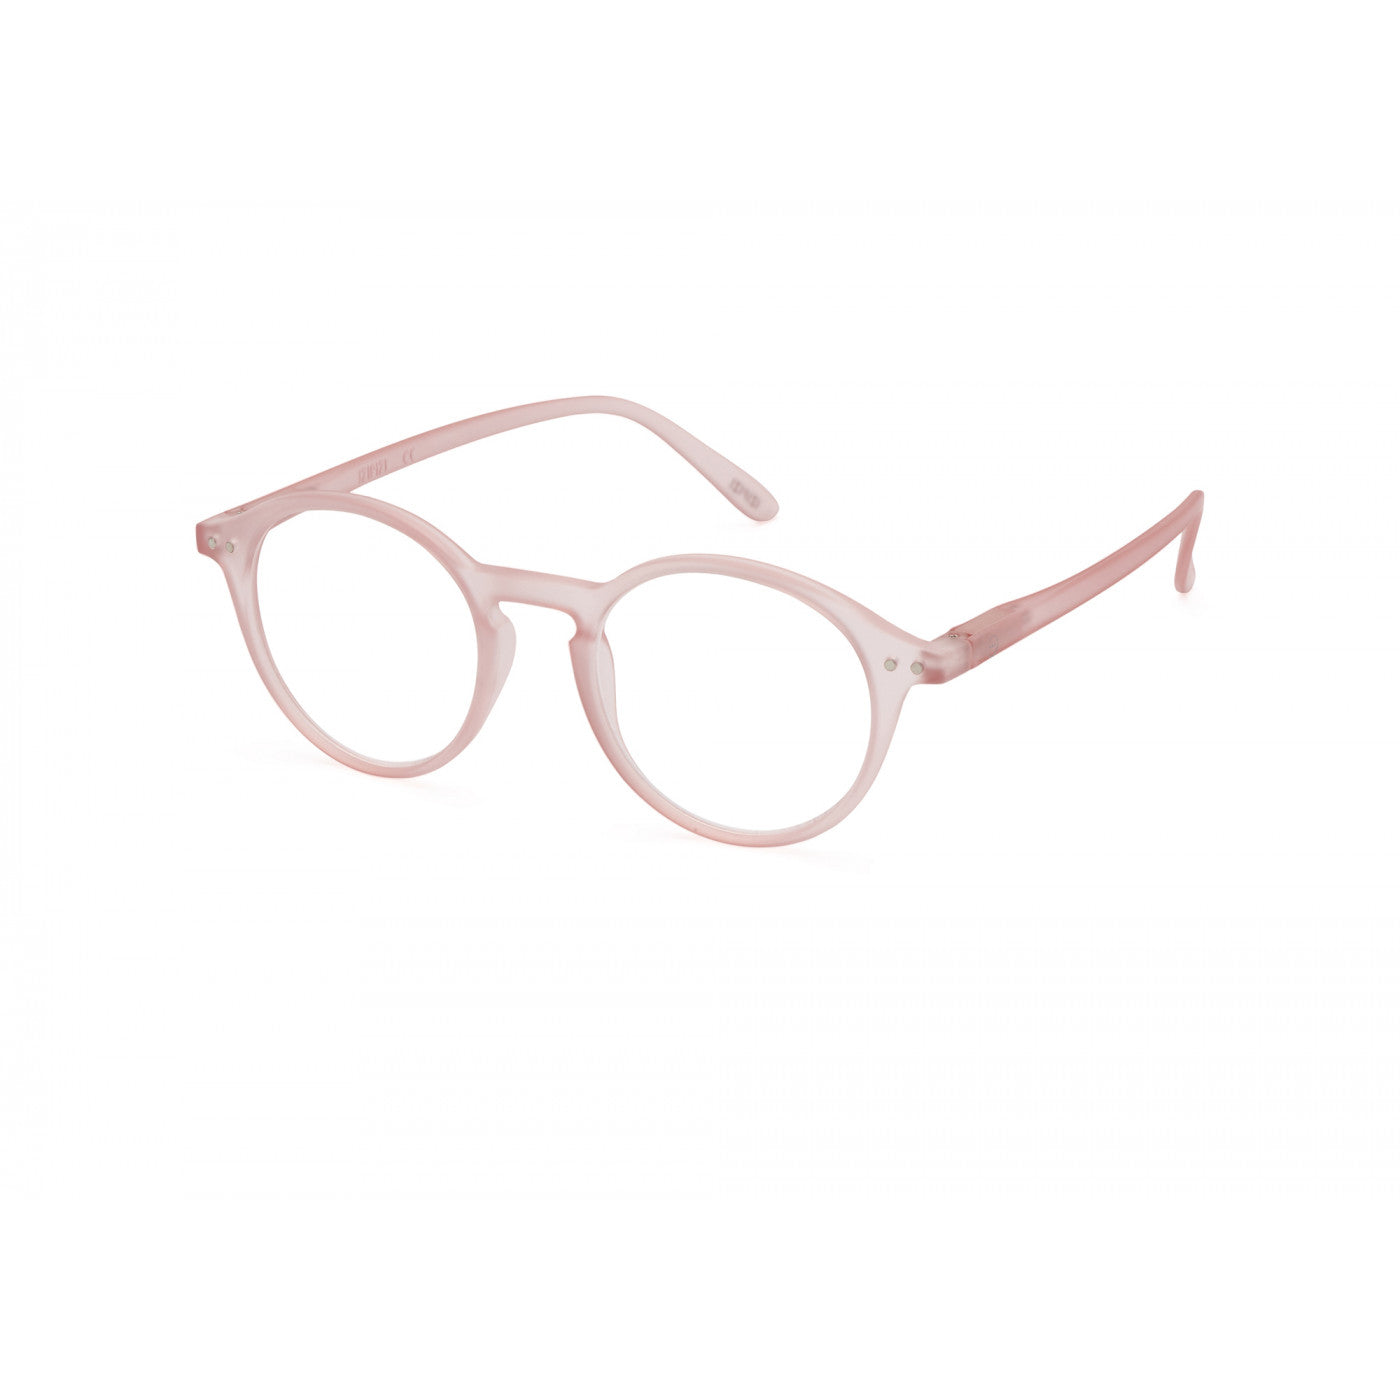 Izipizi Readers +2.50 #D - Pink Halo